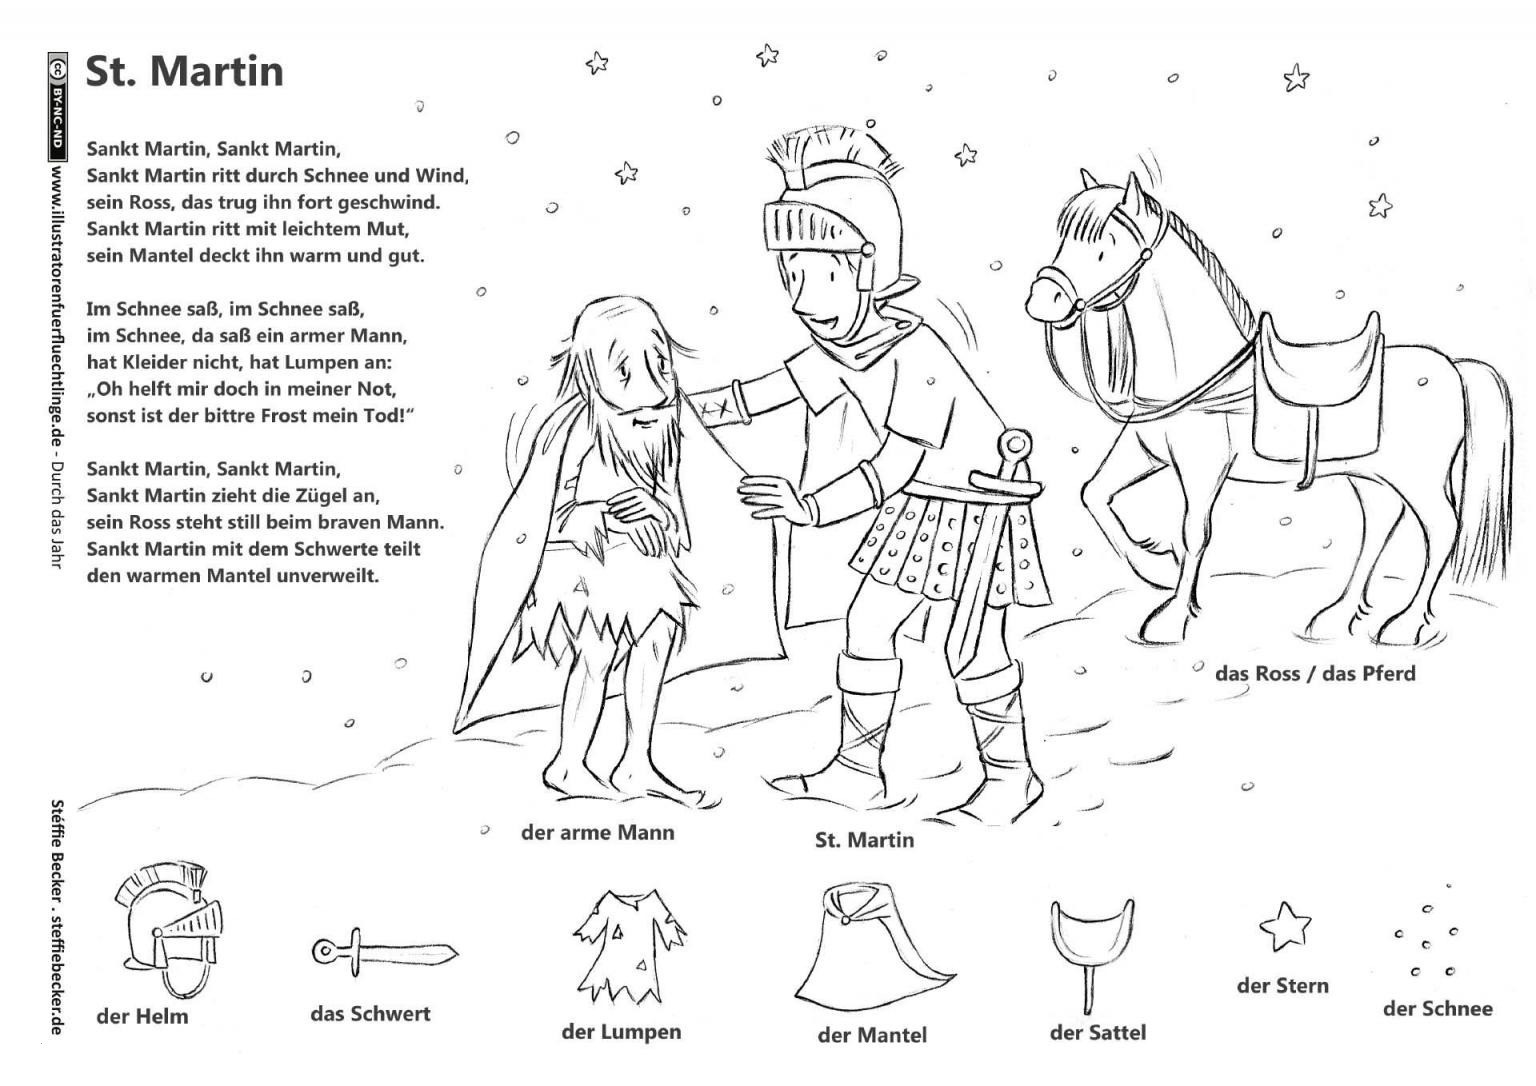 Mia and Me Coloring Pages Inspirierend Ausmalbilder Mia and Me Kostenlos Luxus Pin by Louise Brown Coloring Fotografieren